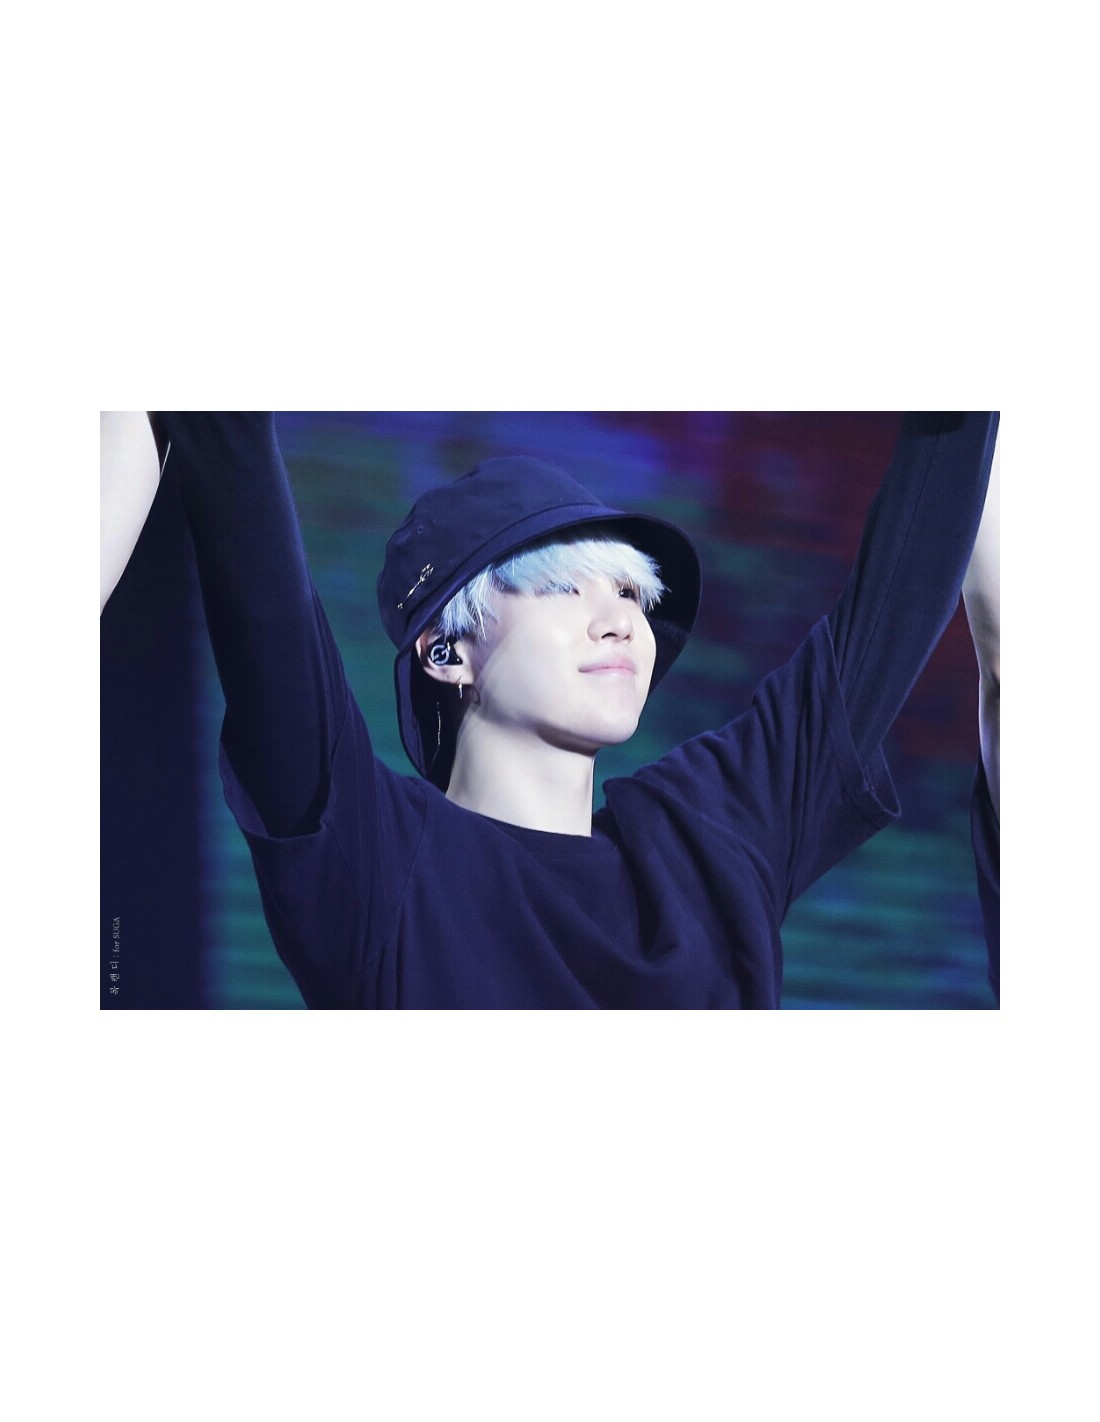 Bts X Mack Barry Collaboration Goods Bucket Hat Suga Jimin